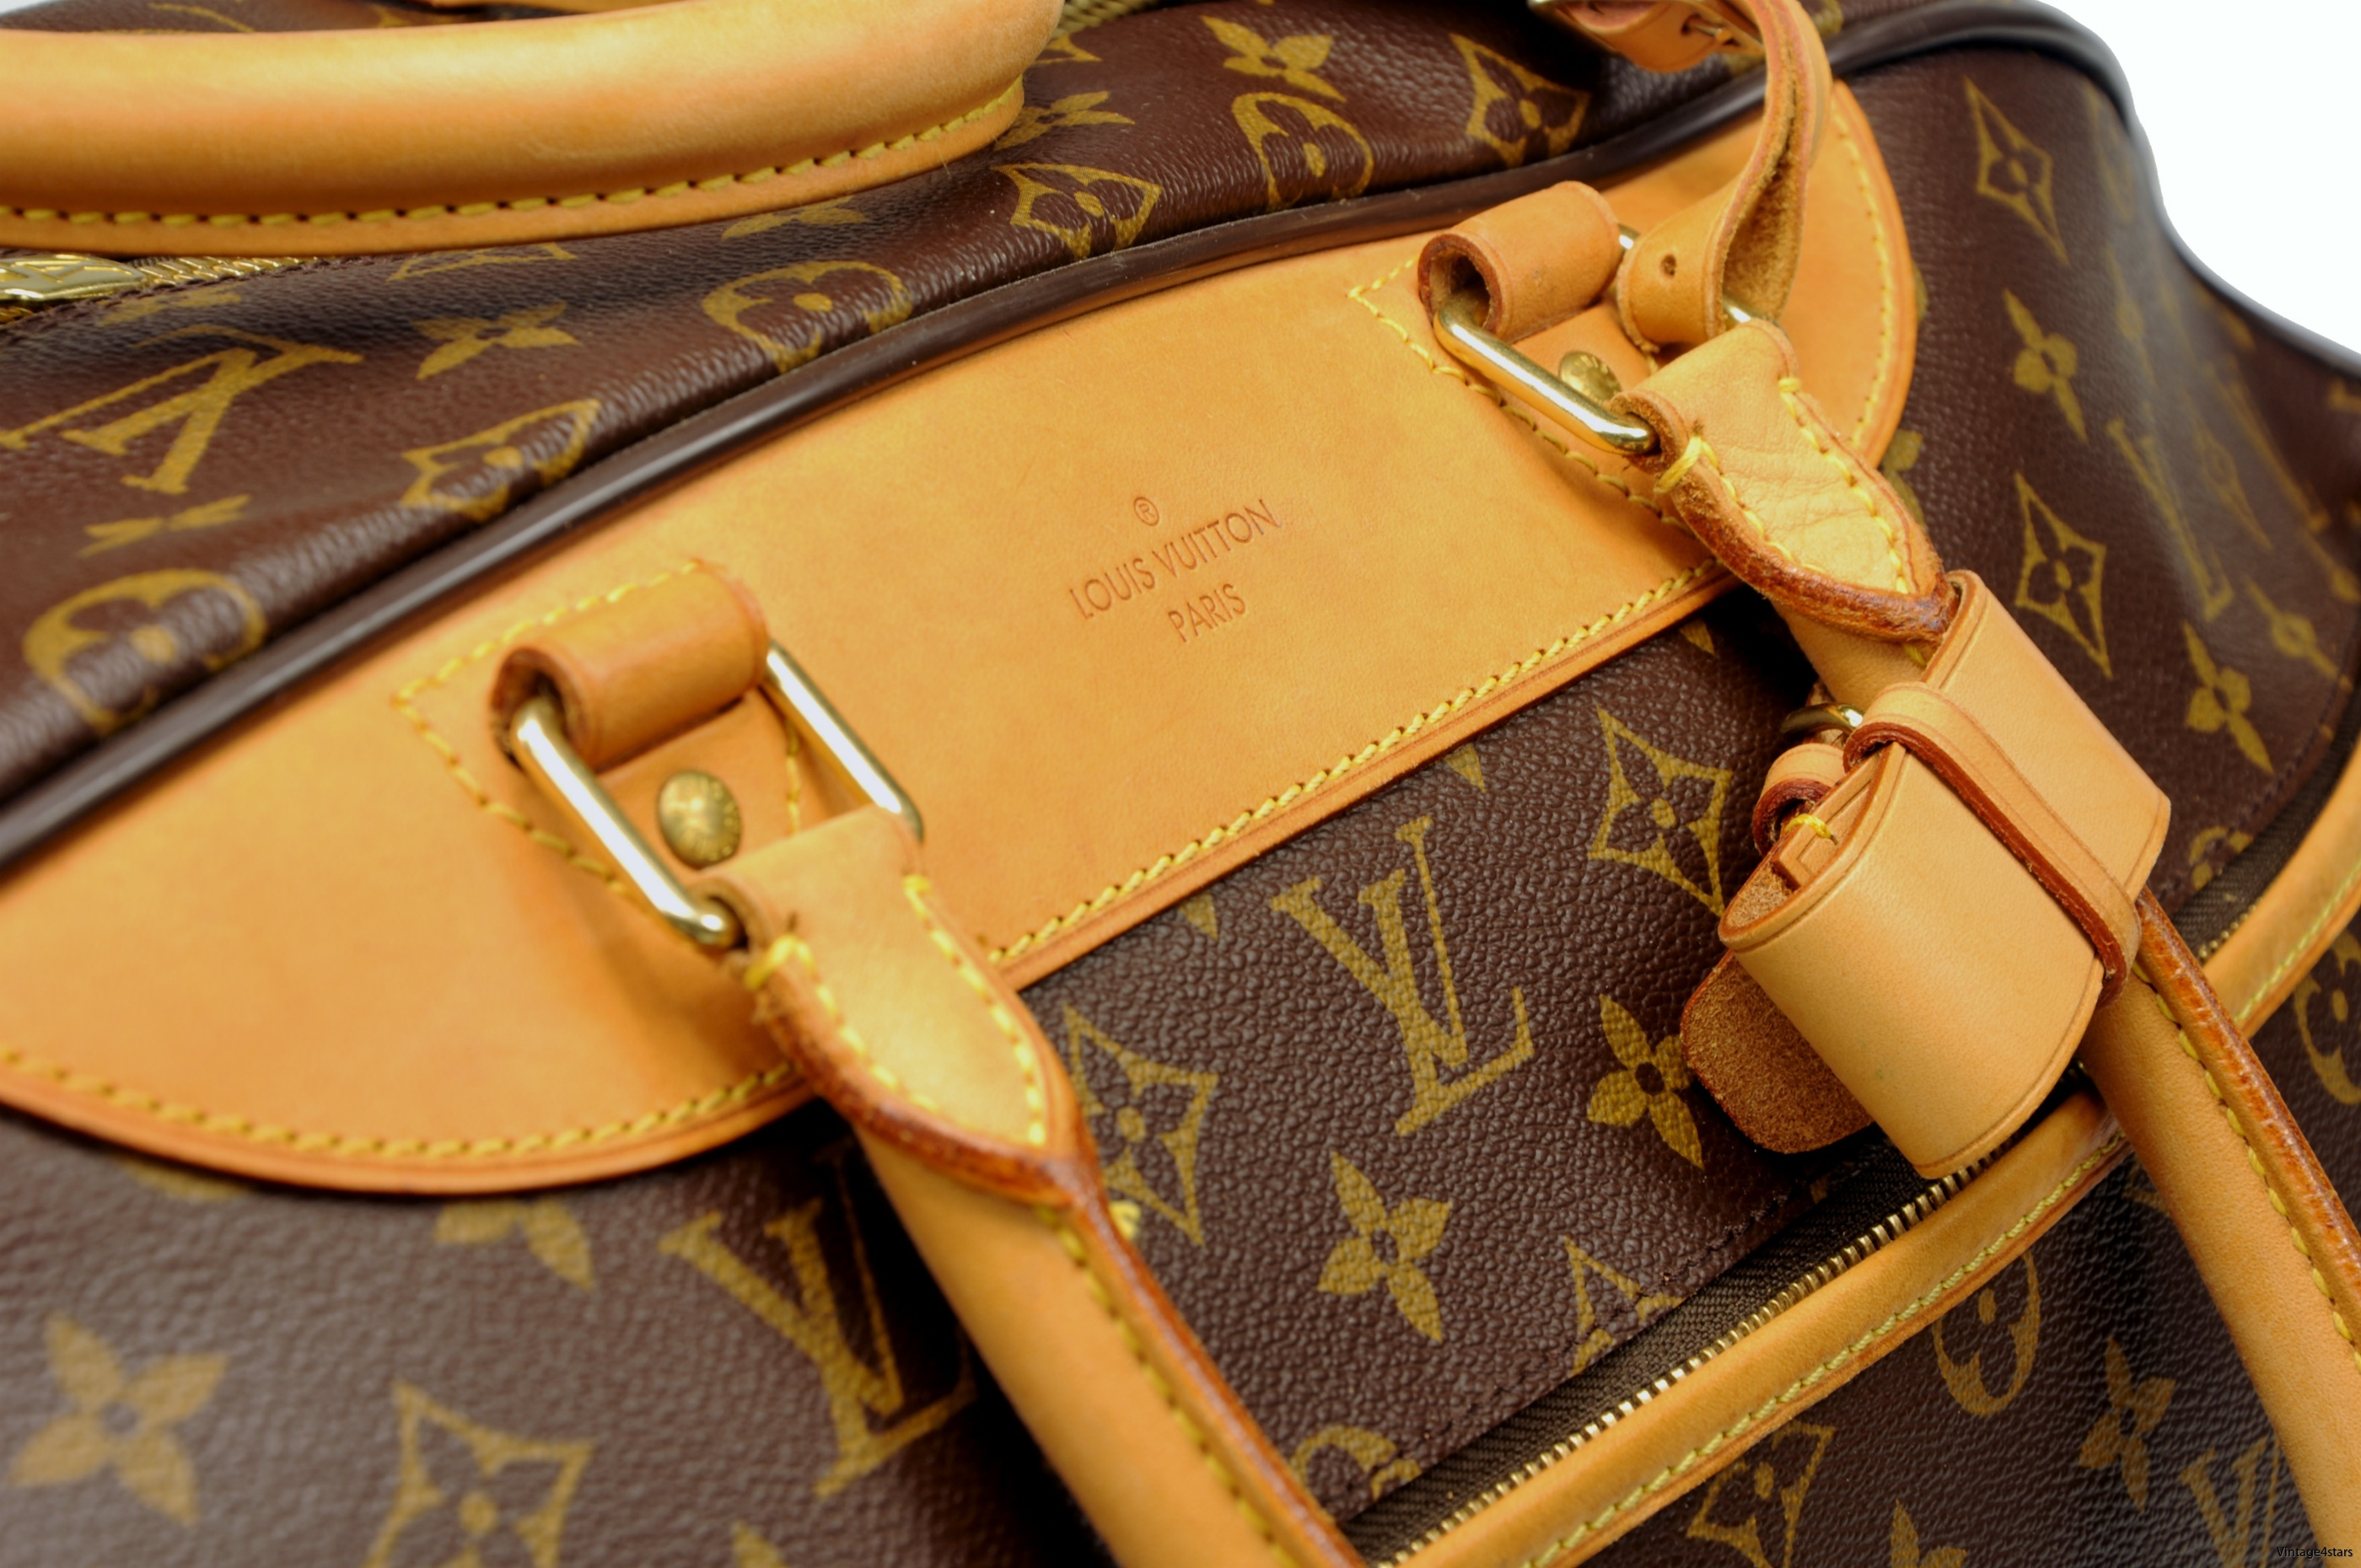 Louis Vuitton Eole 60 Monogram 13